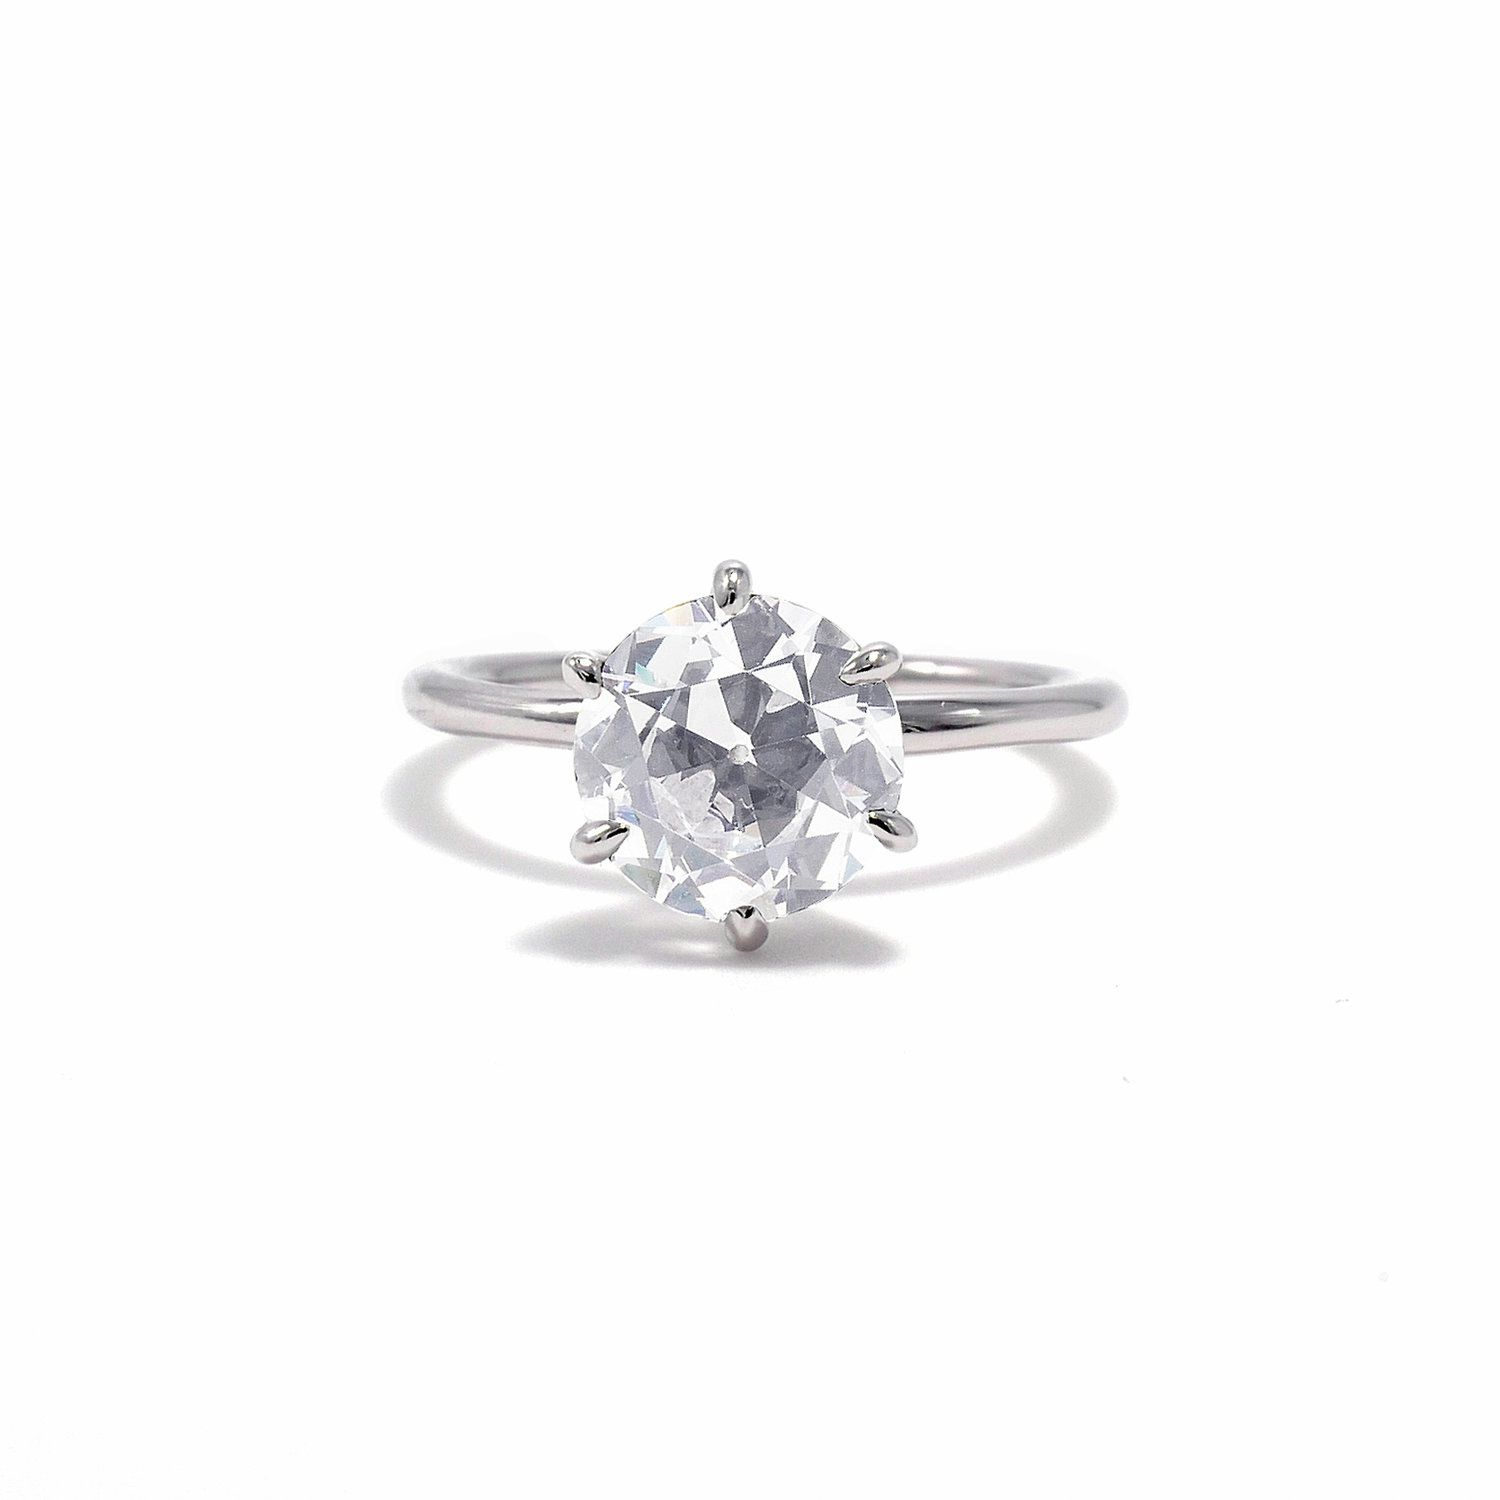 Ashley Zhang Victoria Old European Cut Engagement Ring